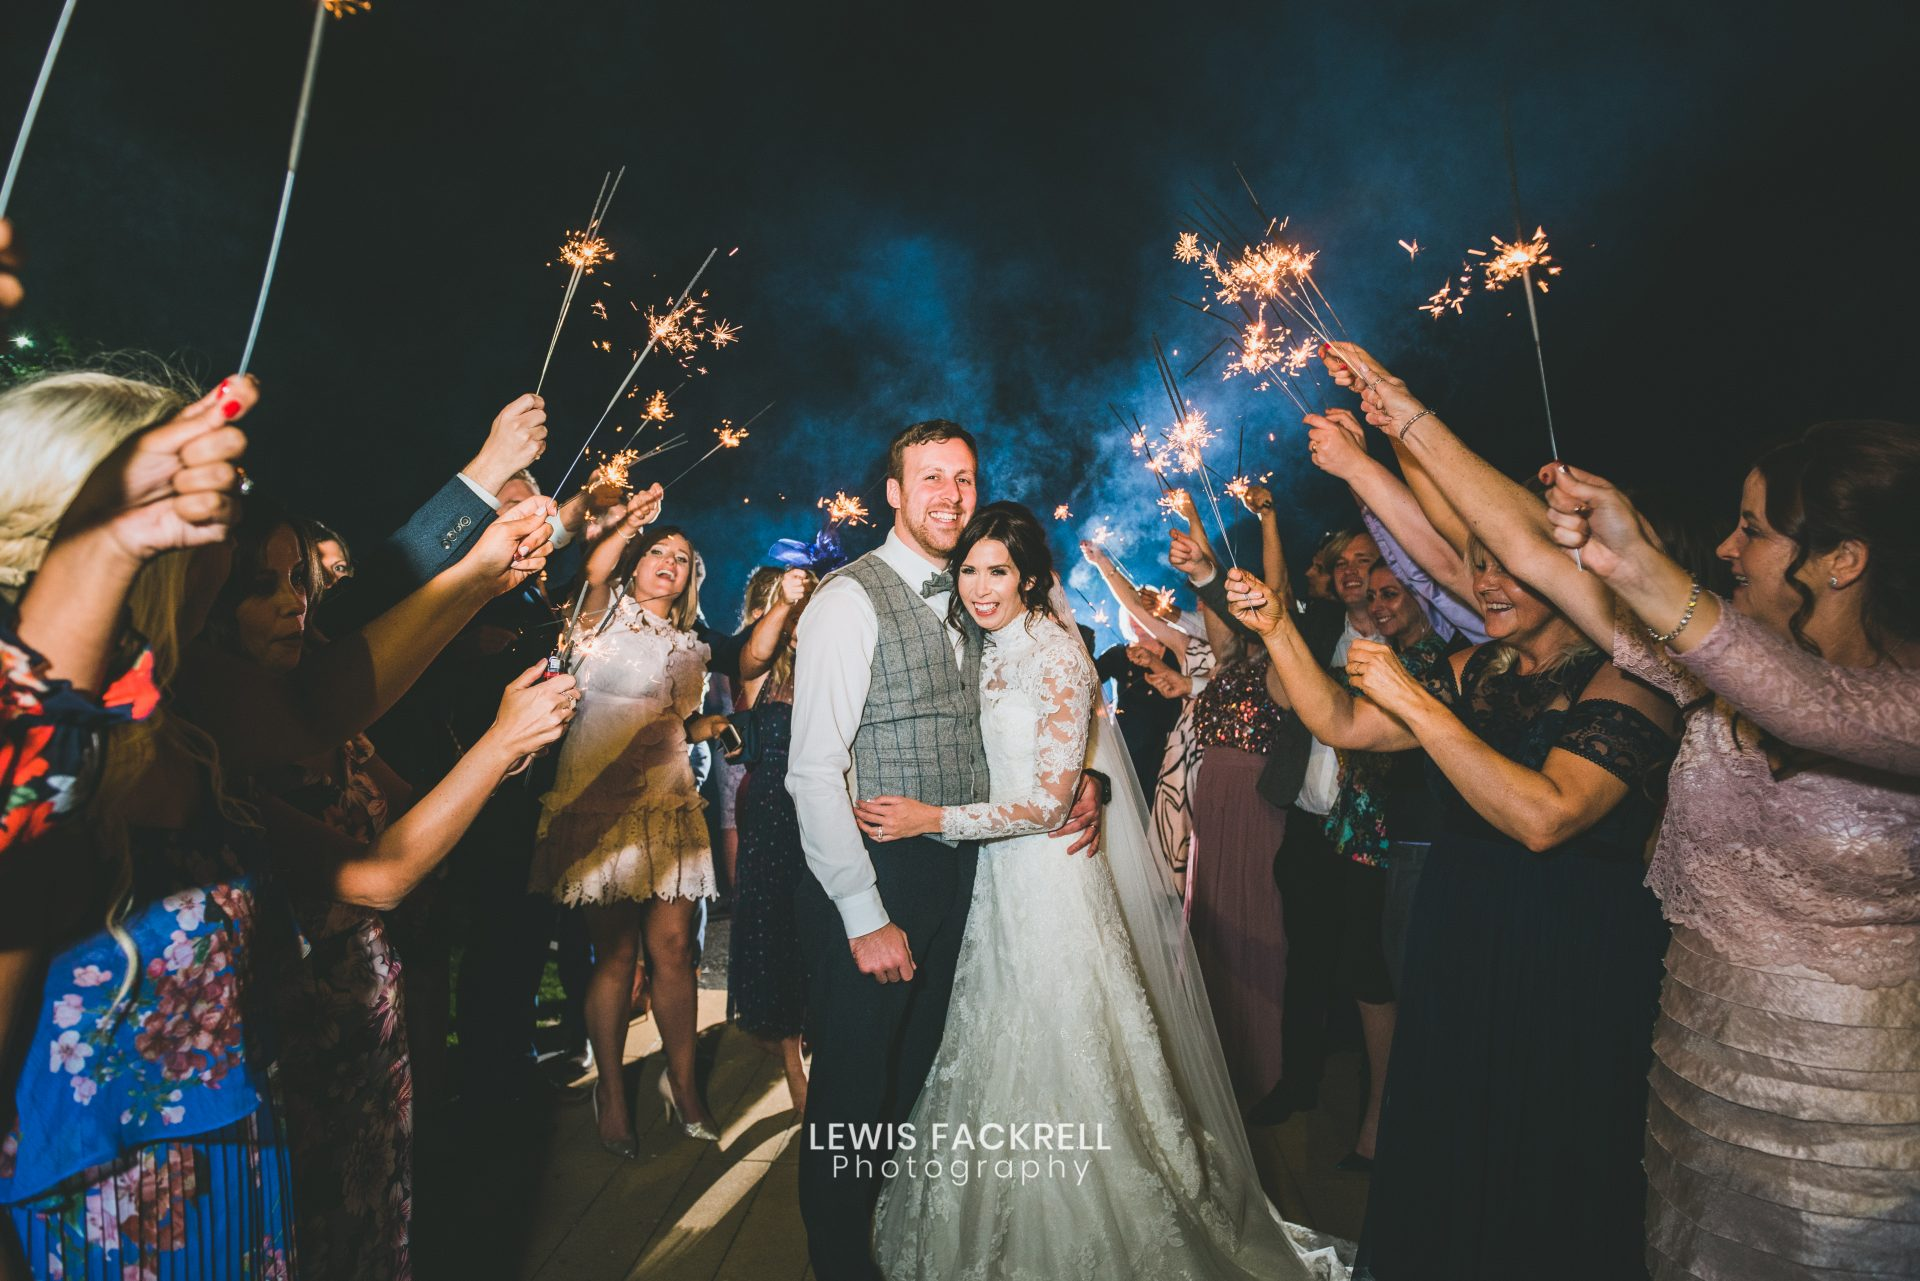 Best new wedding venues in south wales and Cardiff